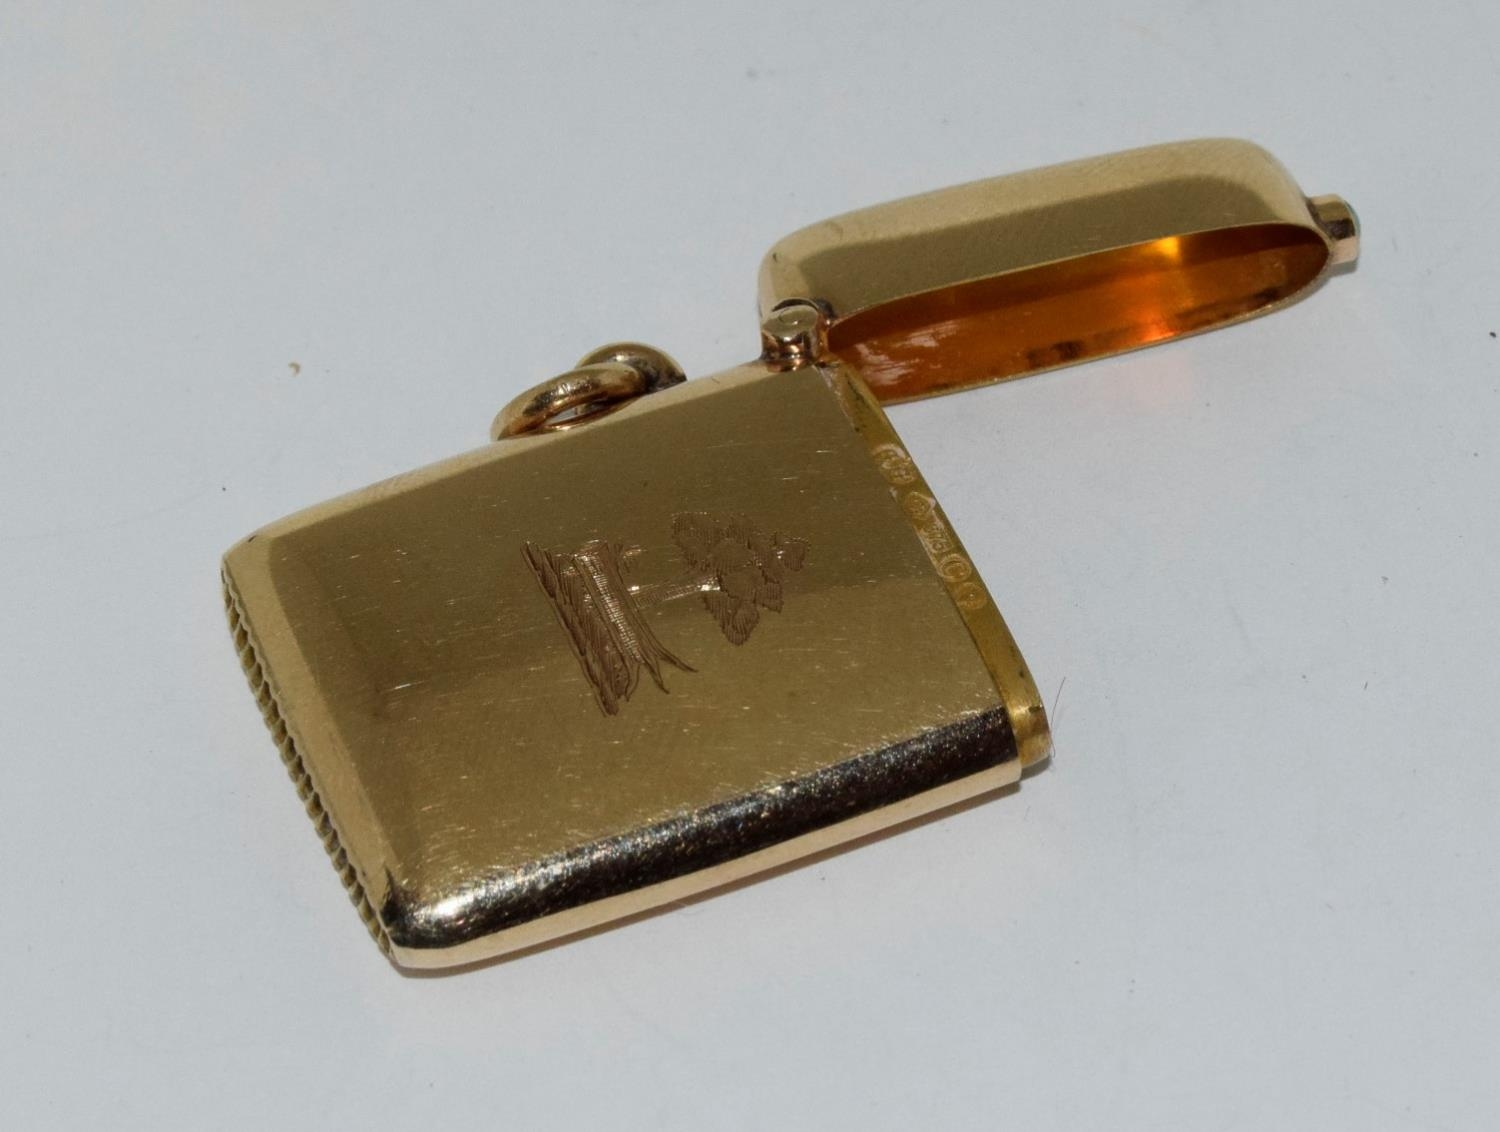 9ct gold Vesta case with a turquoise cabochon fully hallmarked for London 1878 by George Gray - Image 3 of 6